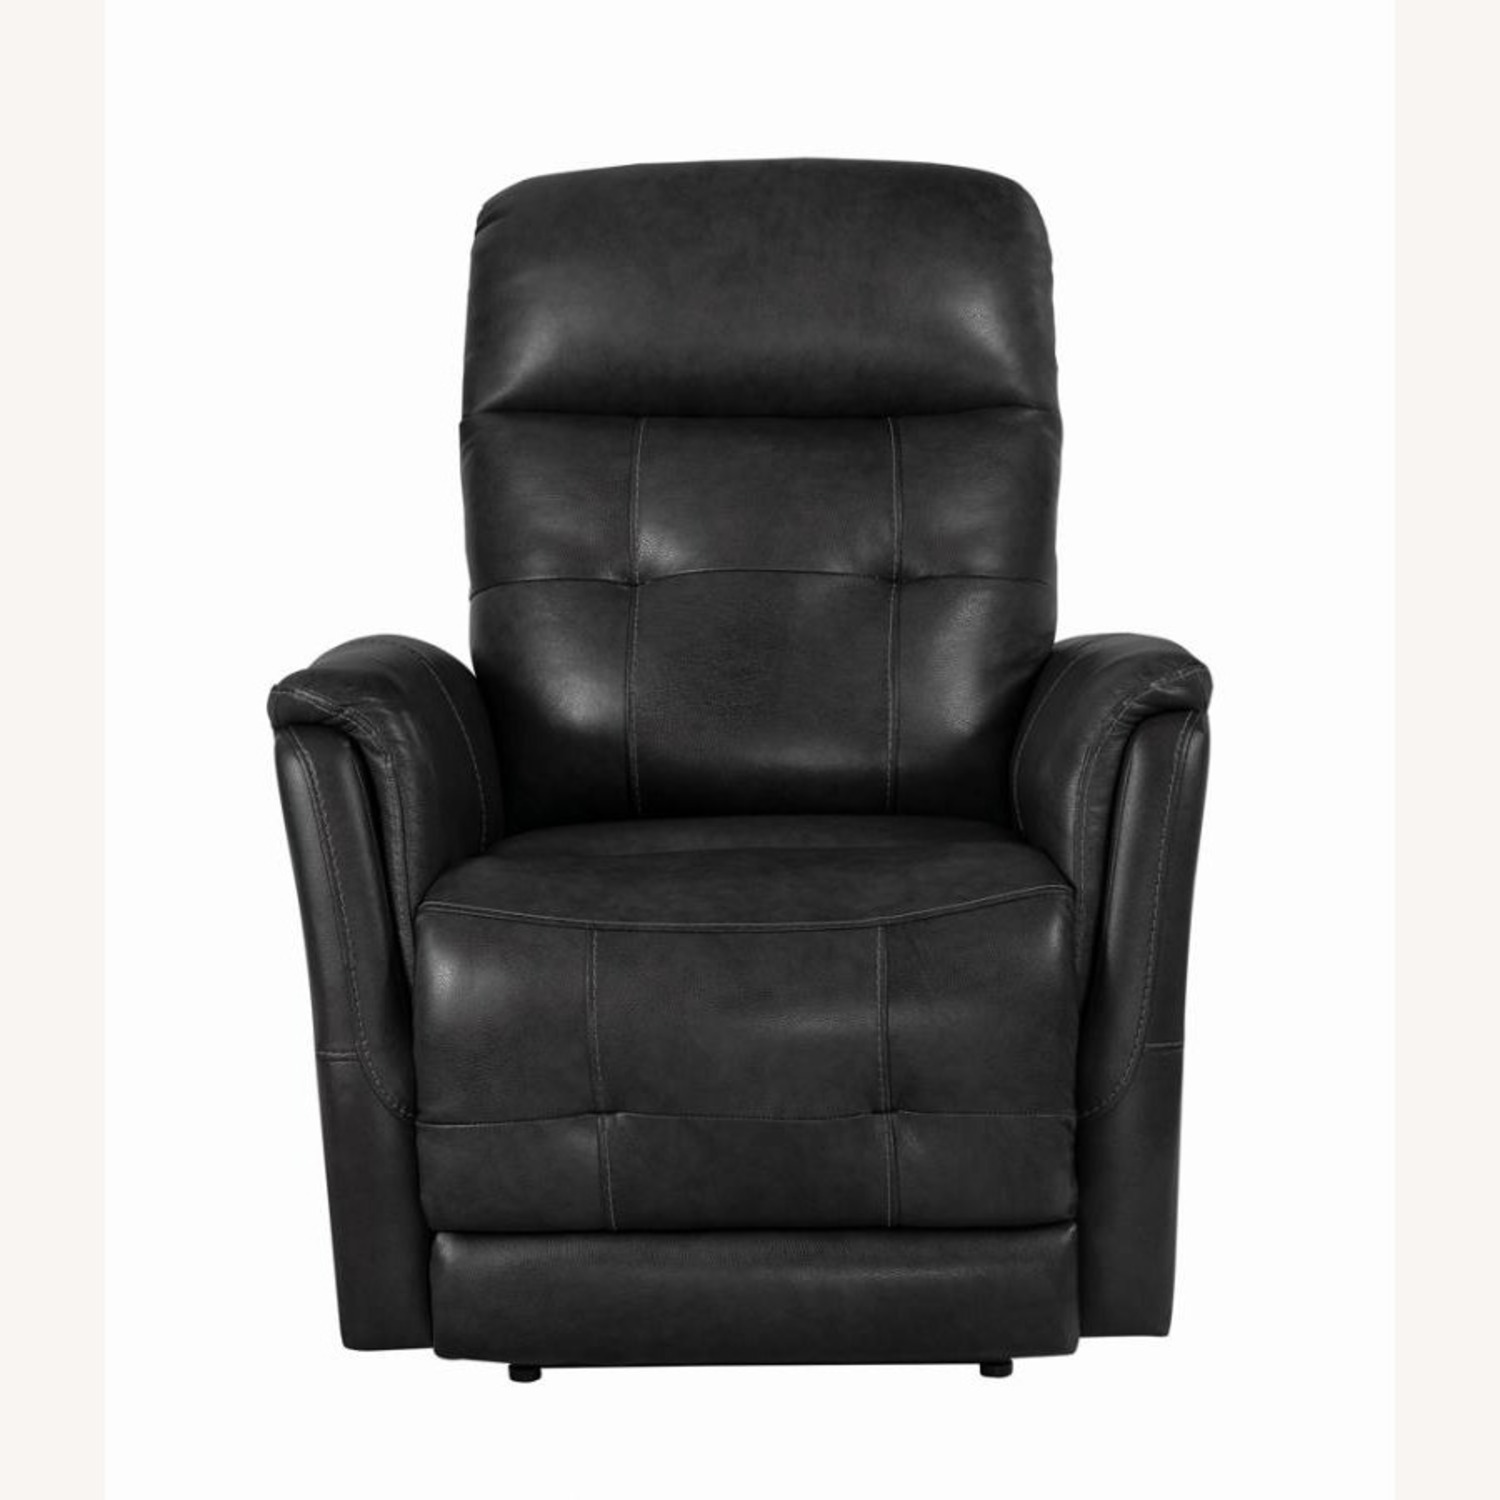 Power Recliner In Grey Leather Upholstery - image-2